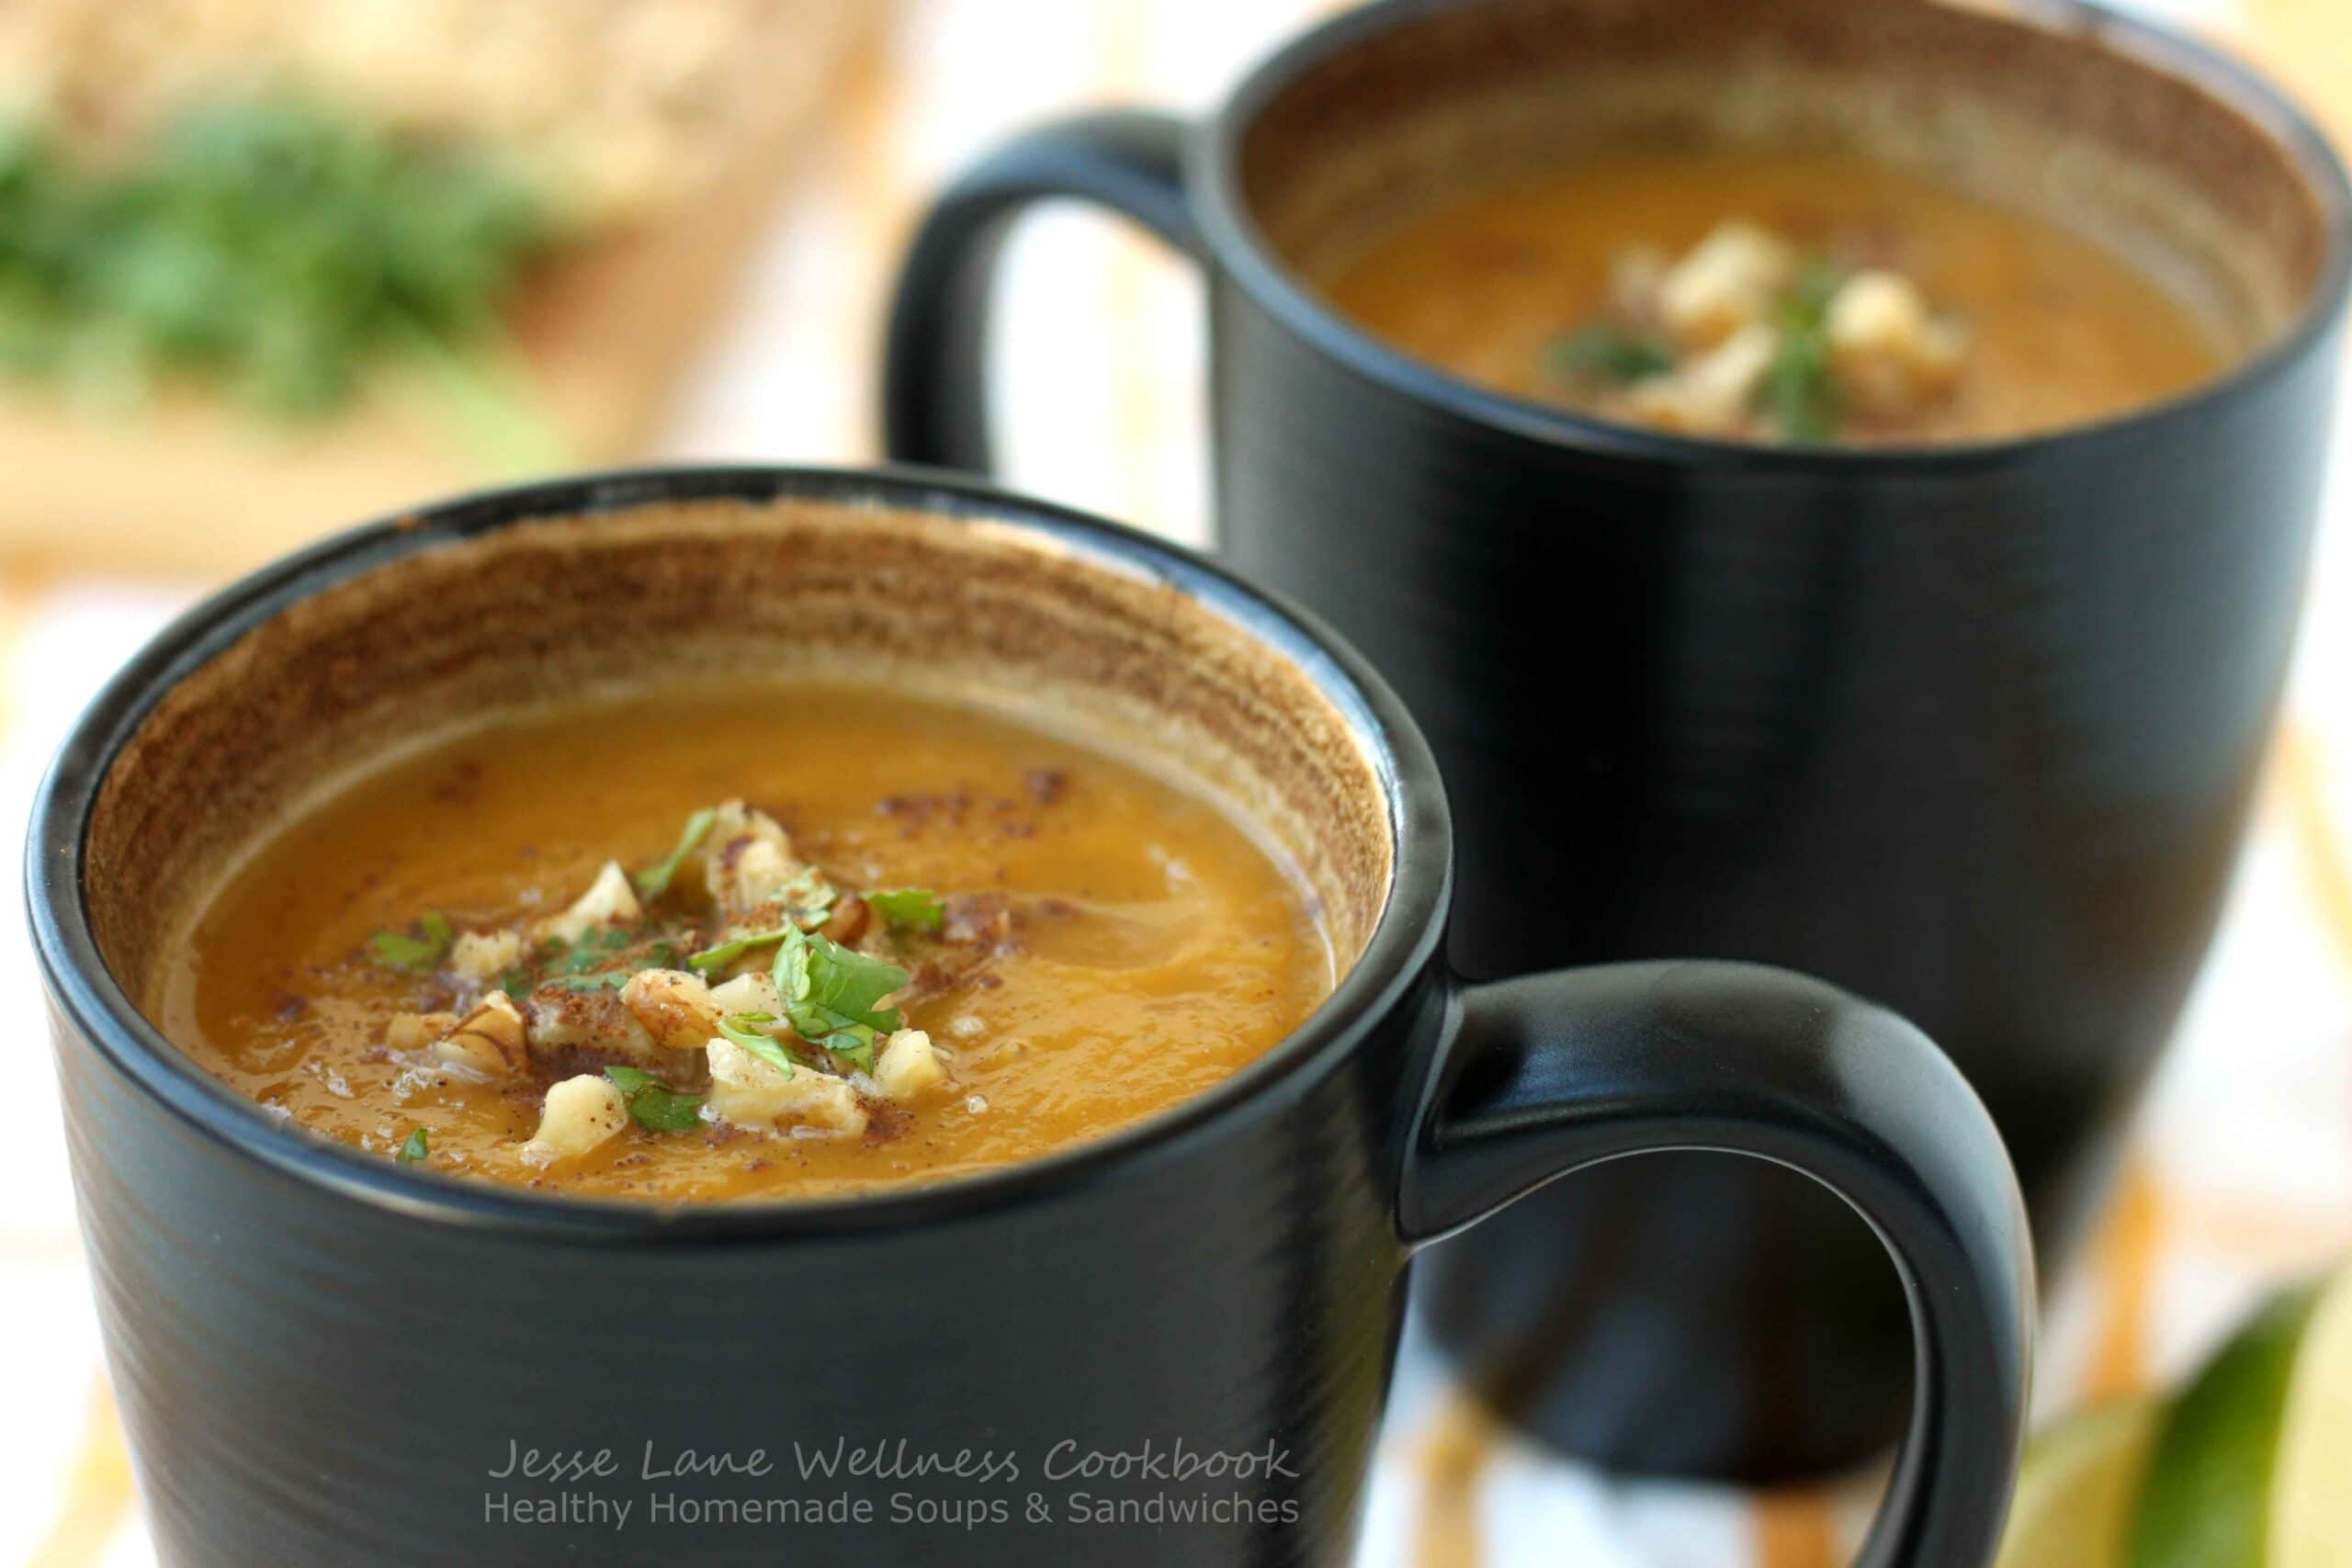 Creamy Butternut Squash Soup from @jesselwellness Healthy Homemade Soups and Sandwiches #jlwcookbook